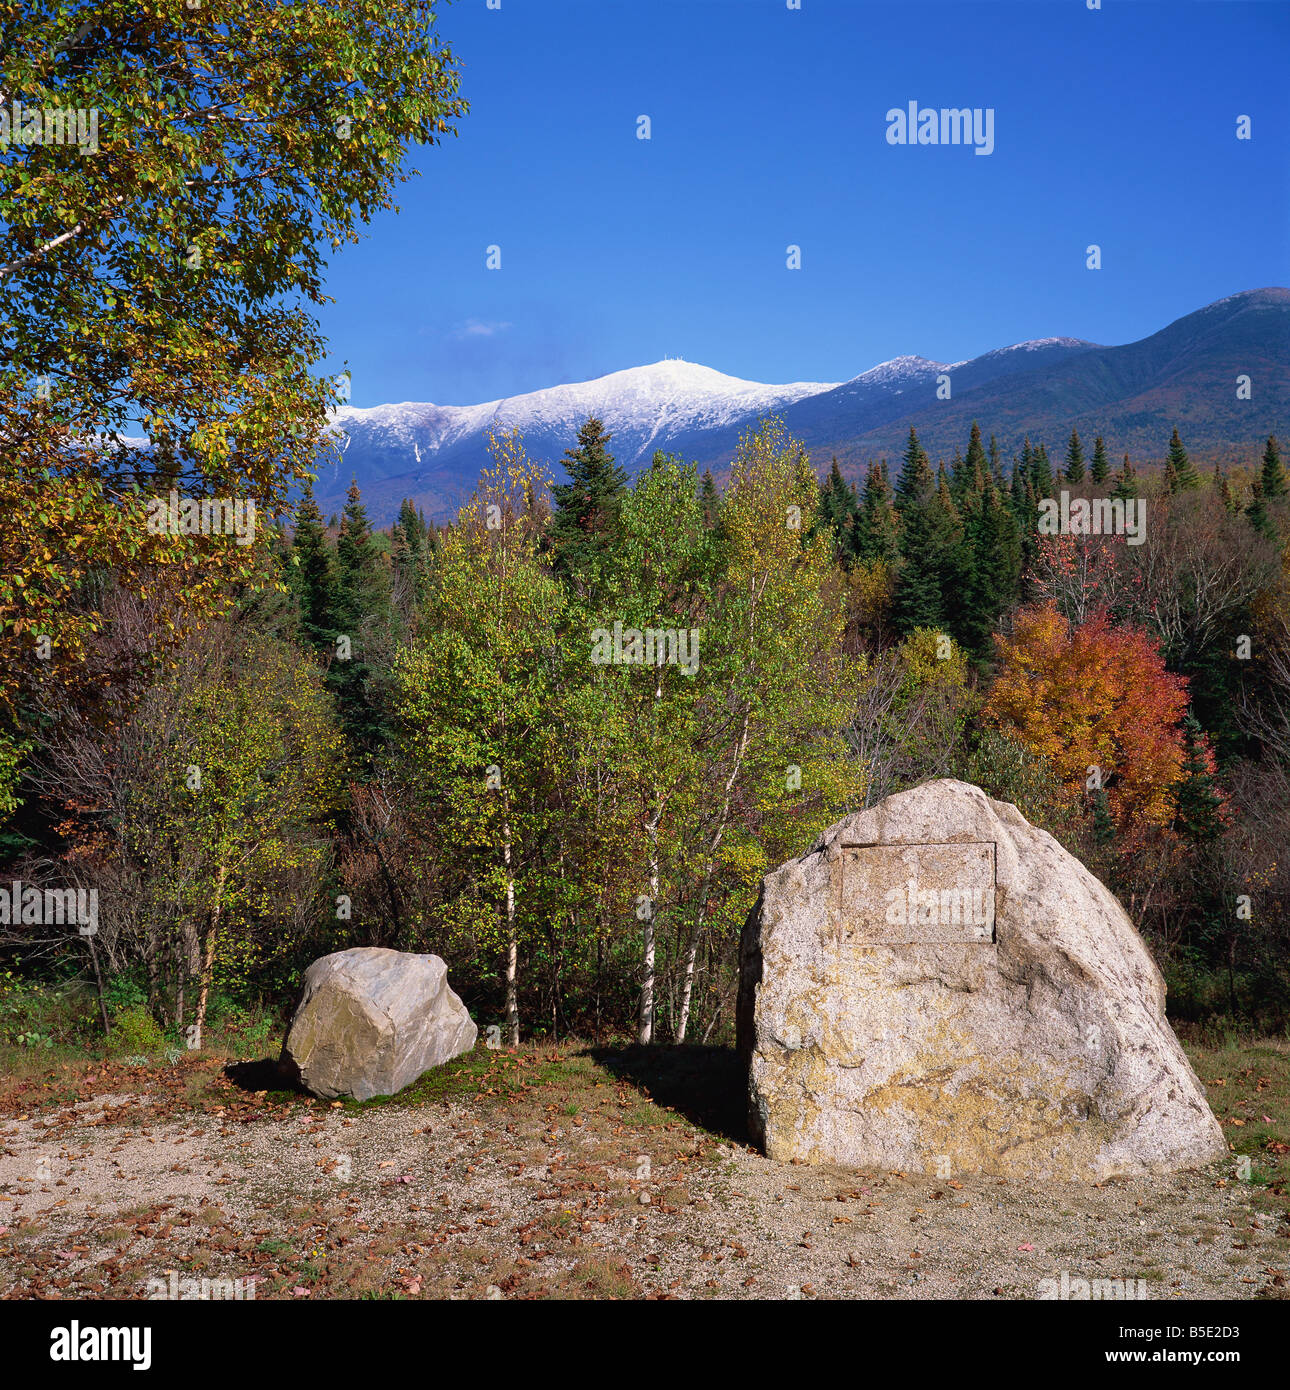 Large stone with plaque removed in forest during autumn with Mount Washington behind White Mountains National Forest - Stock Image